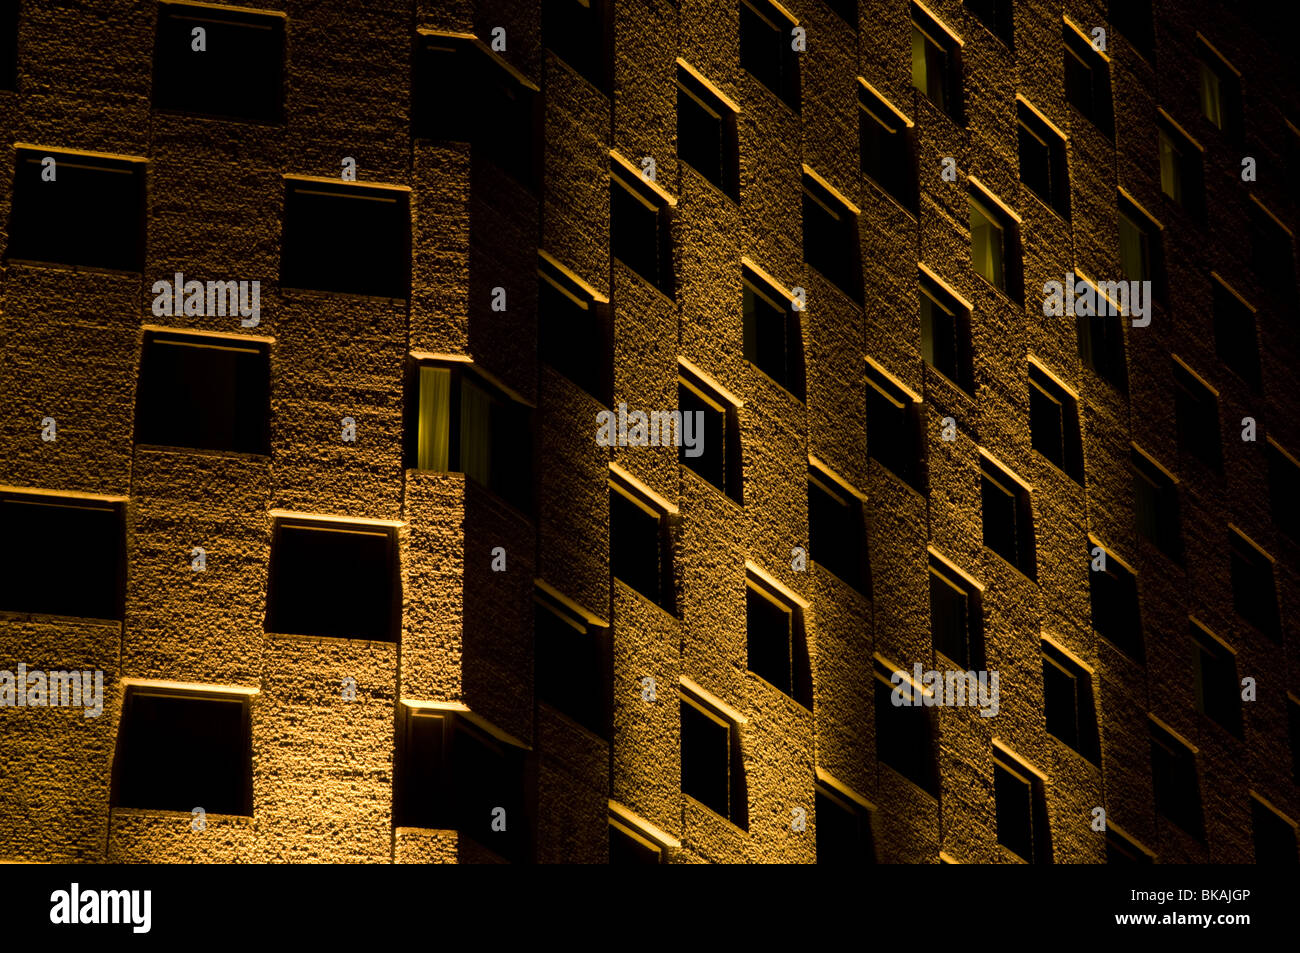 Close up view of hotel building in Montreal, Canada - Stock Image